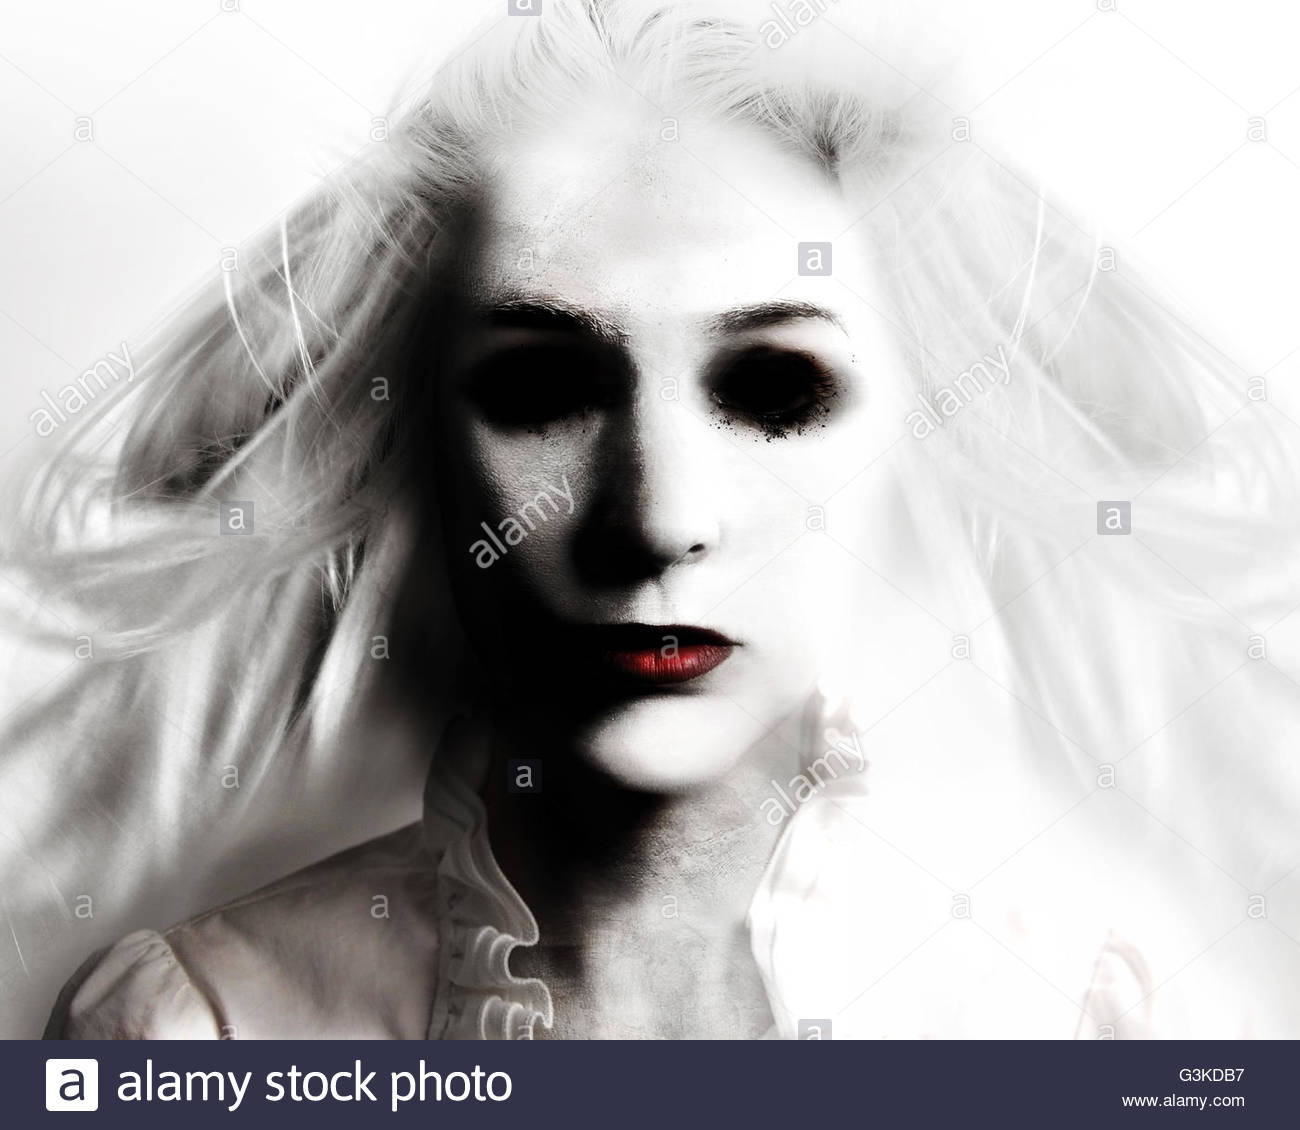 A scary evil woman with black eyes and red lips is death on a white background for a fear or Halloween concept. - Stock Image